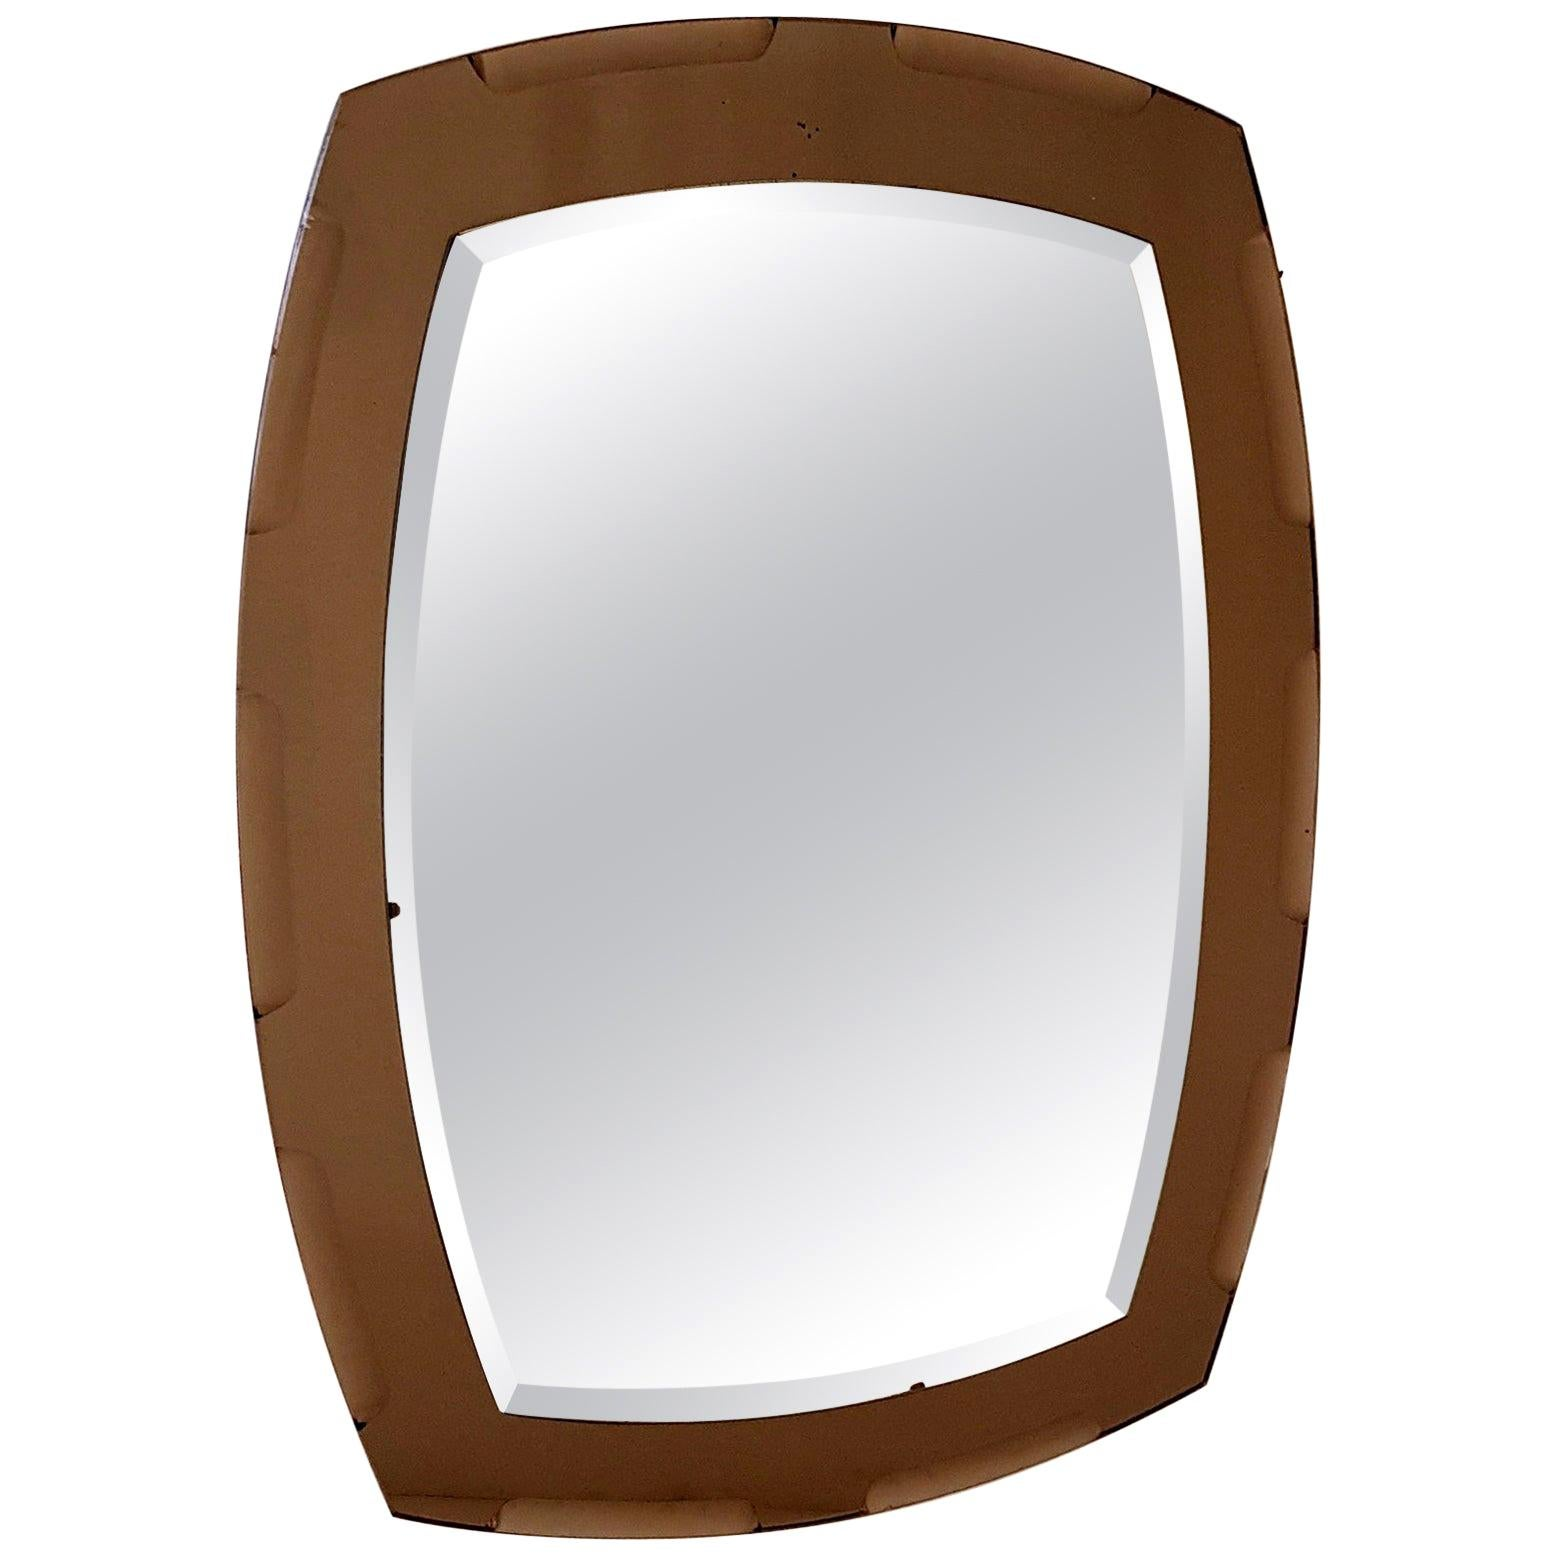 Vintage Wall Mirror by Lupi Cristal-Luxor, Italy